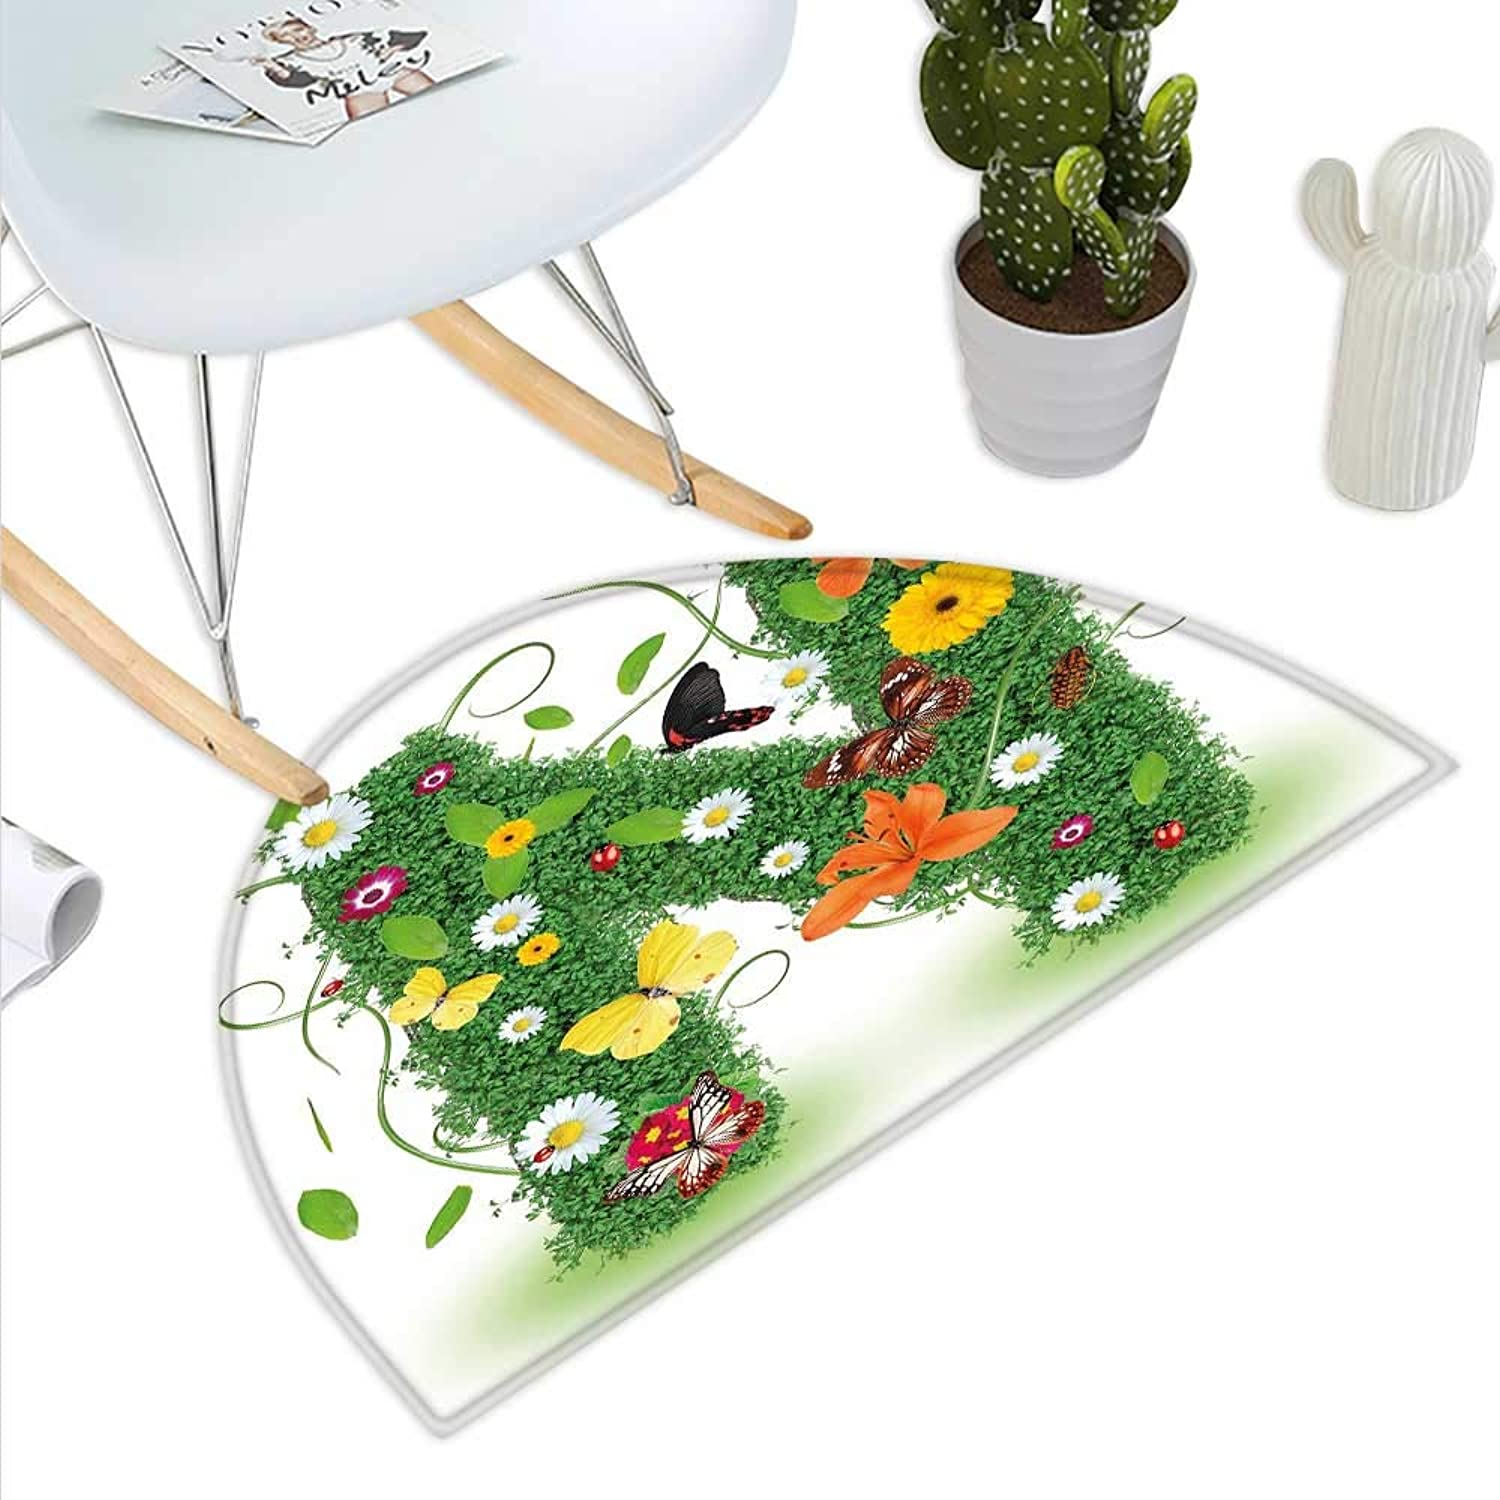 Letter N Semicircle Doormat Chamomile Daisy Gerbera Blooms and Green Leaves colorful Butterflies Nature Halfmoon doormats H 43.3  xD 64.9  Green Multicolor